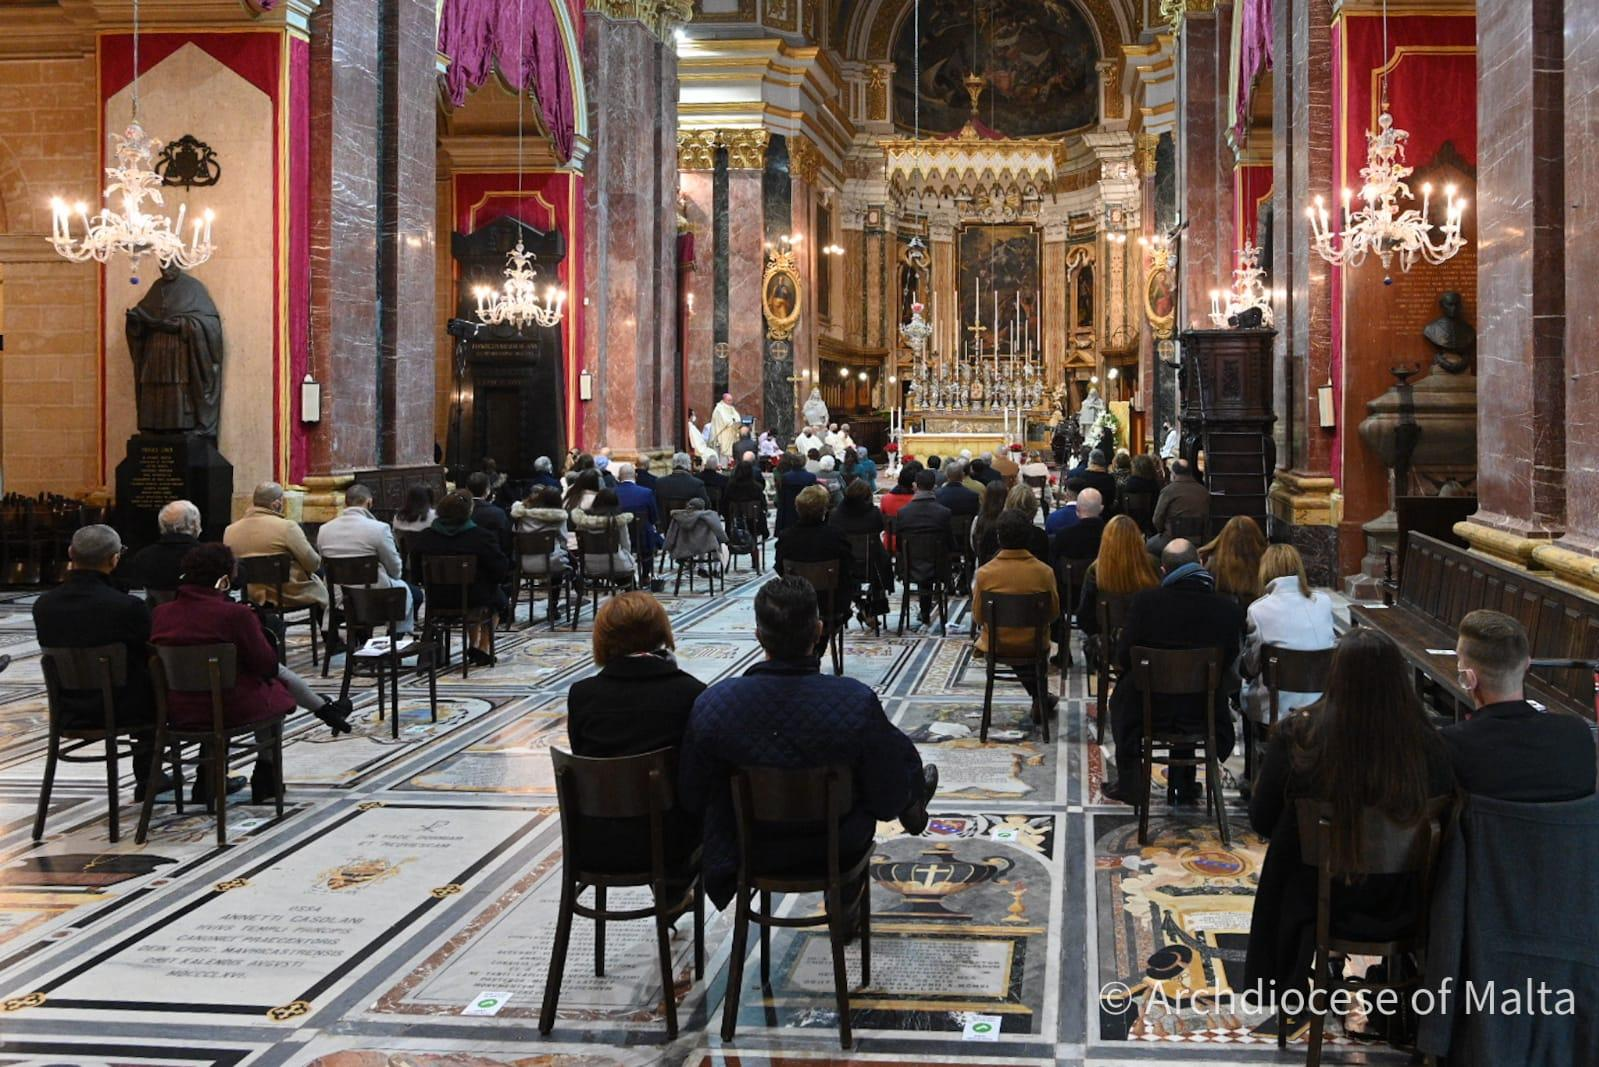 Churchgoers seated in respect of social distancing requirements at St Paul's Cathedral. Photo: Curia/Church.mt